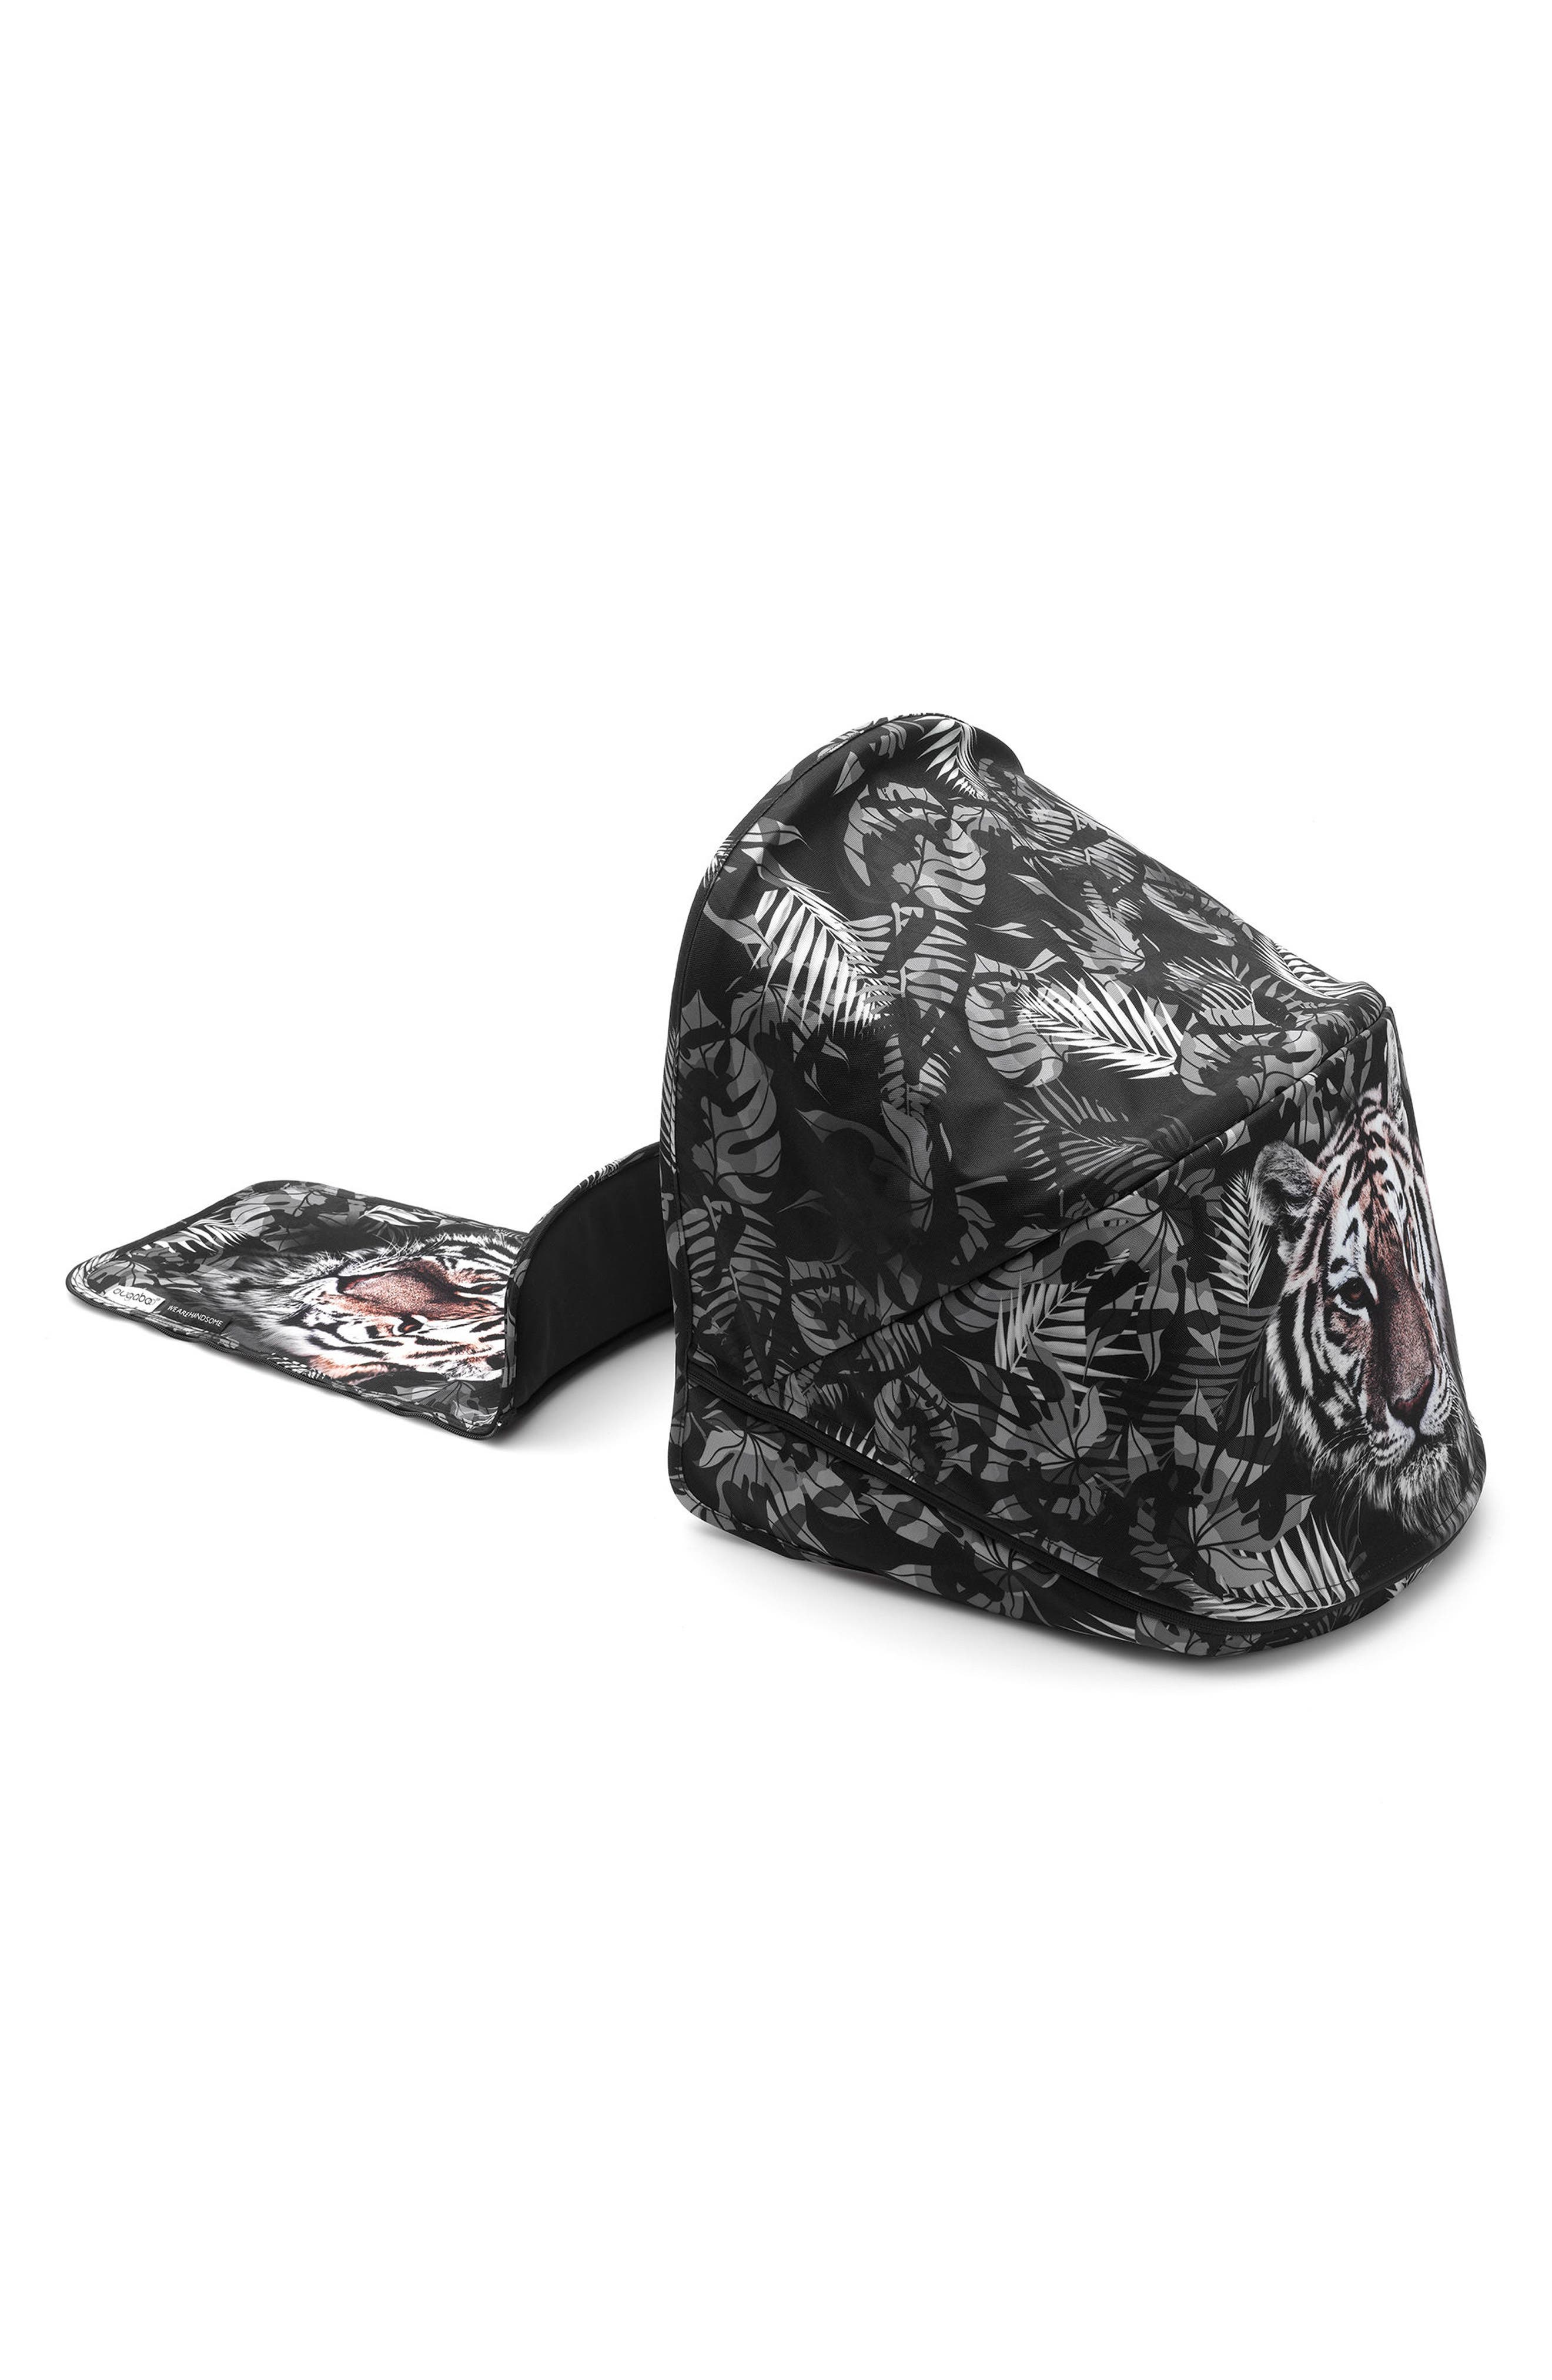 Bugaboo x We Are Handsome Limited Edition Tailored Fabric Set for Bugaboo Buffalo Stroller